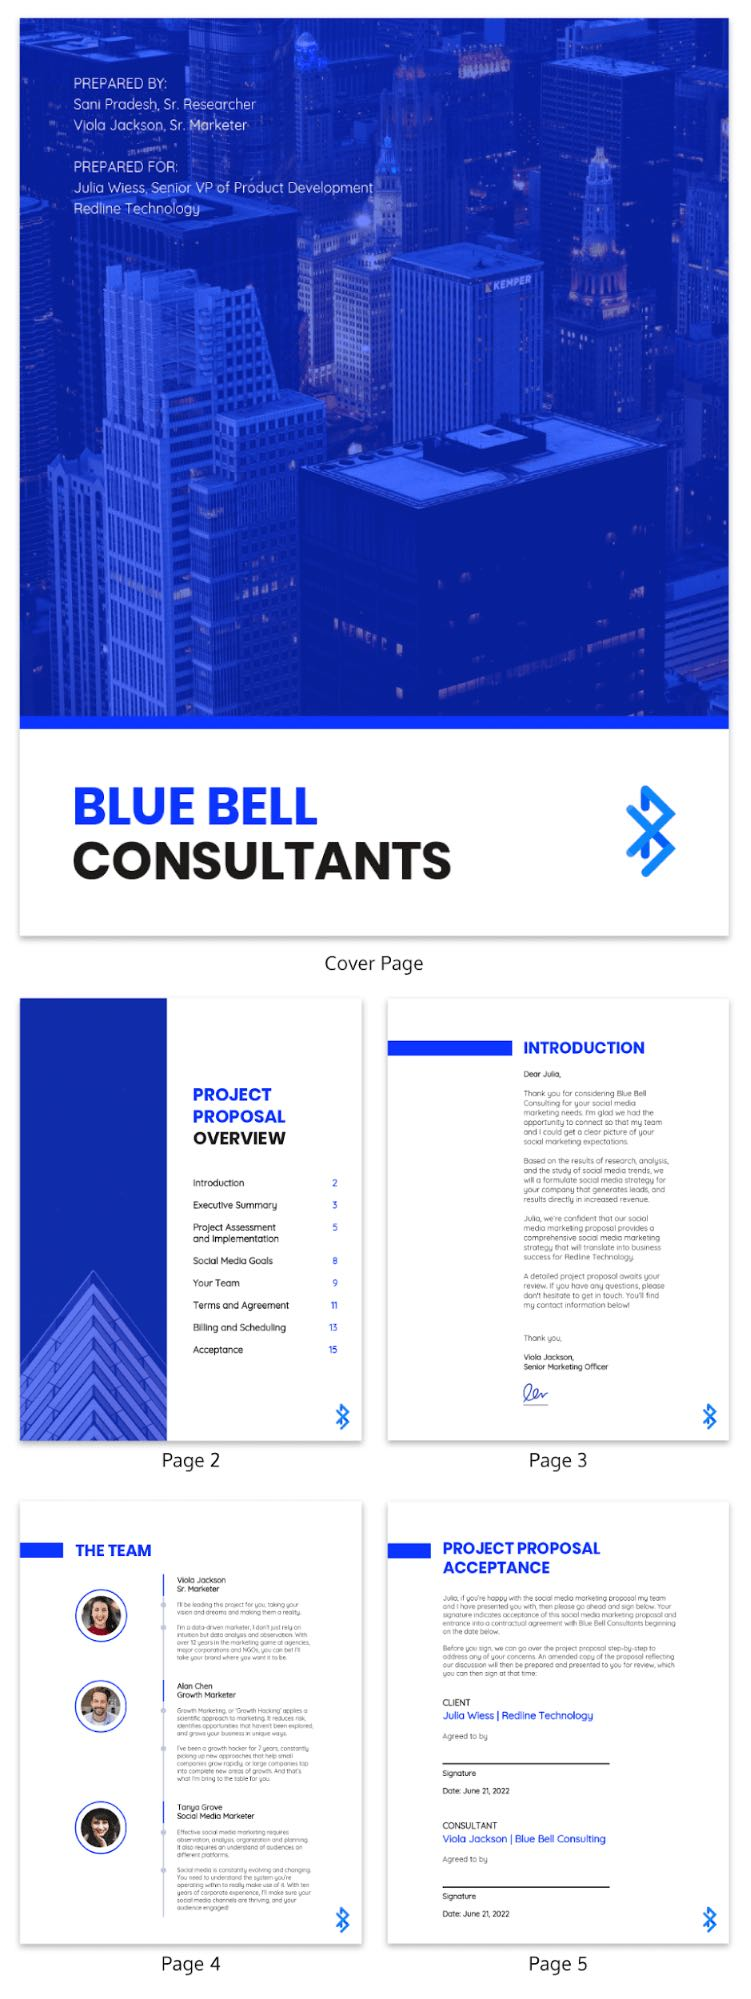 12 Essential Consulting Templates For Marketing, Planning